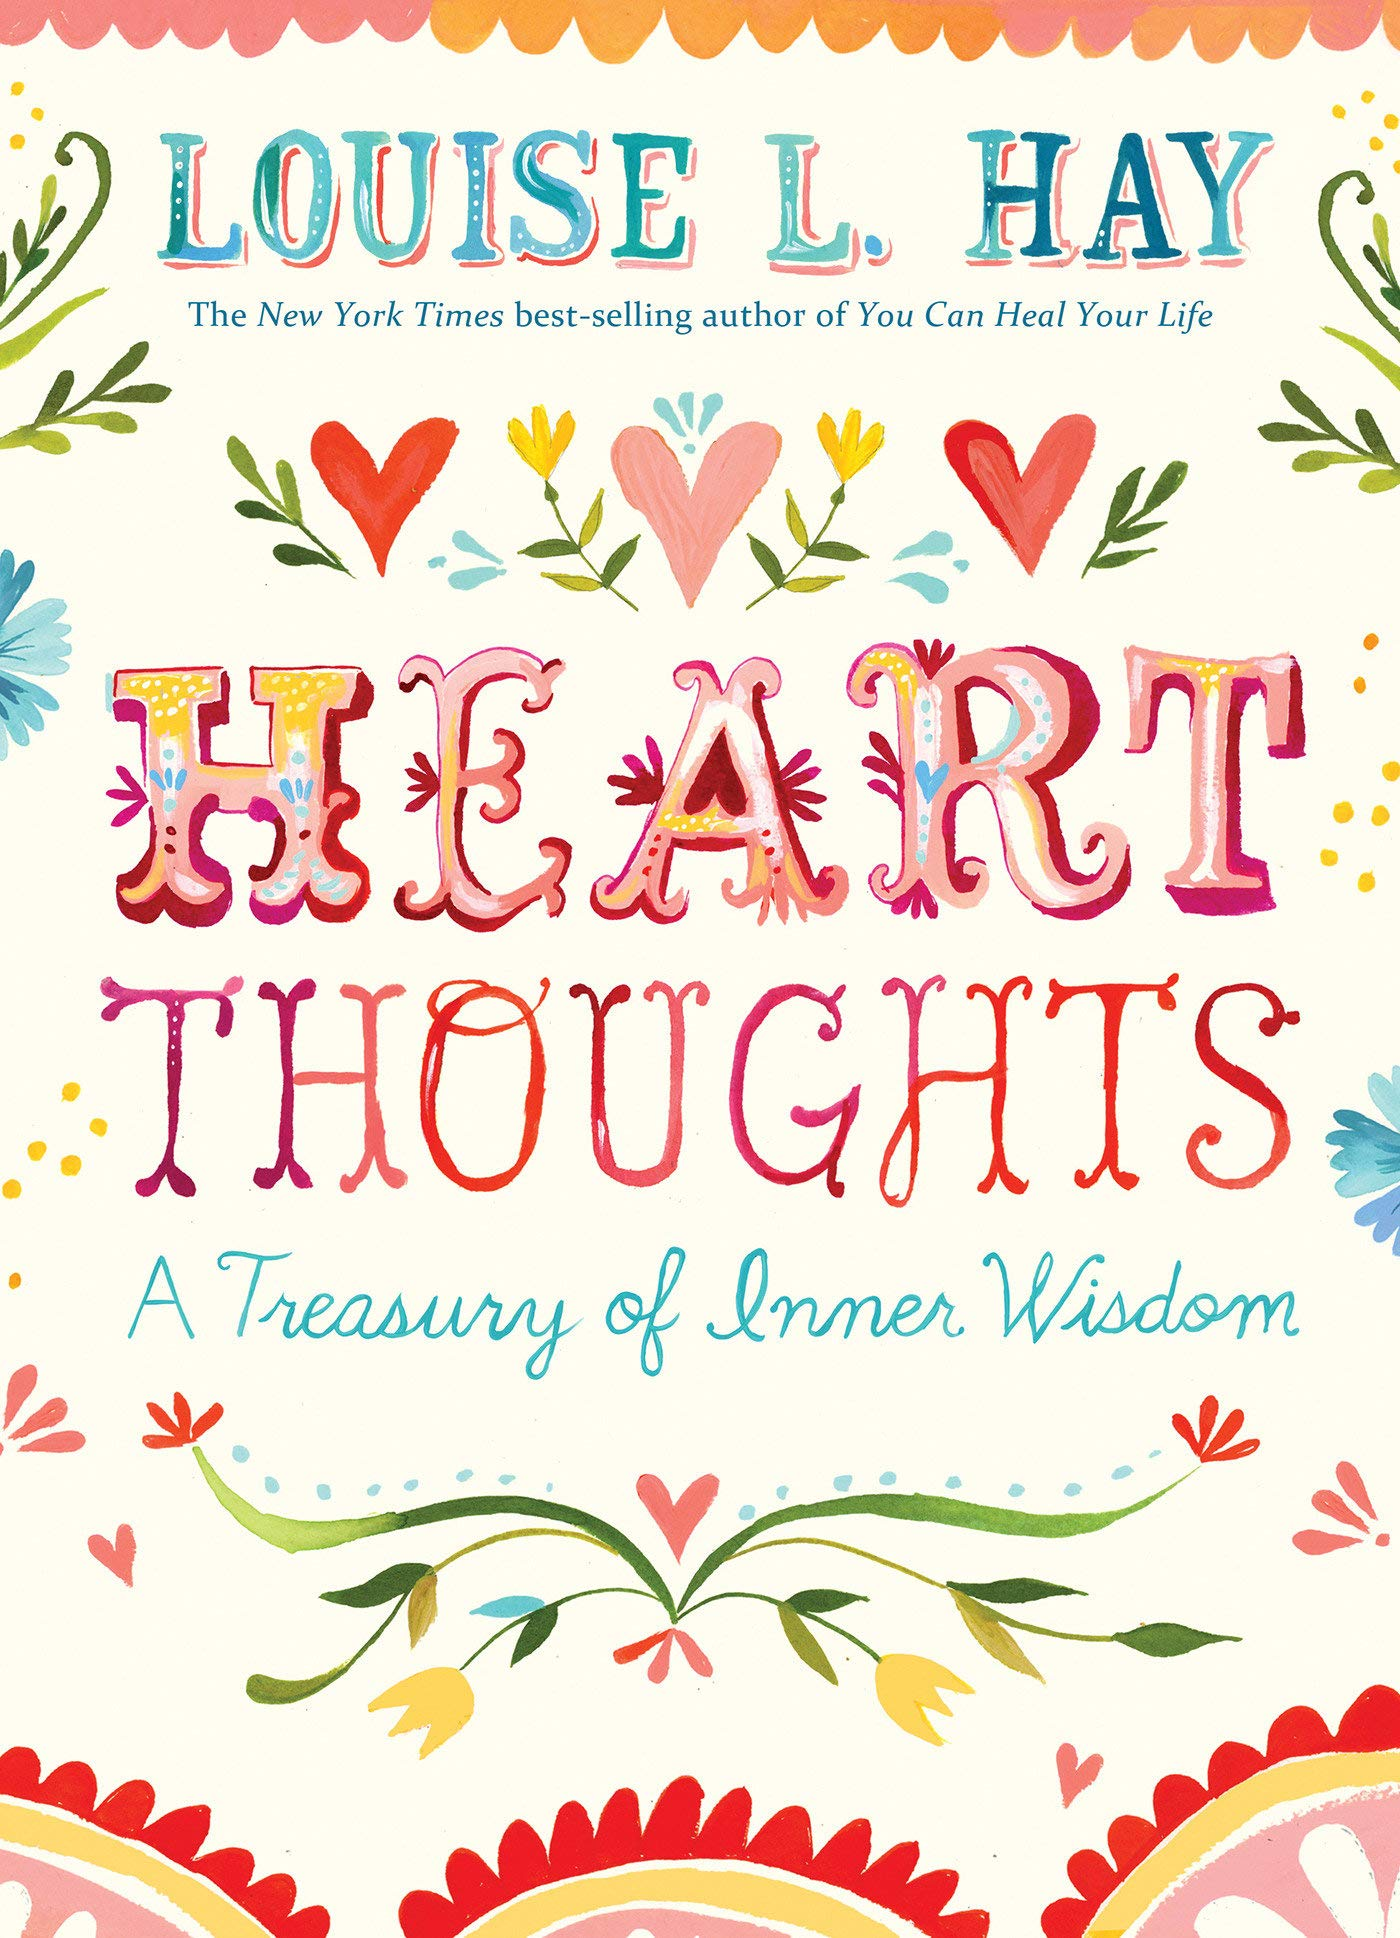 Heart Thoughts Treasury Inner Wisdom product image